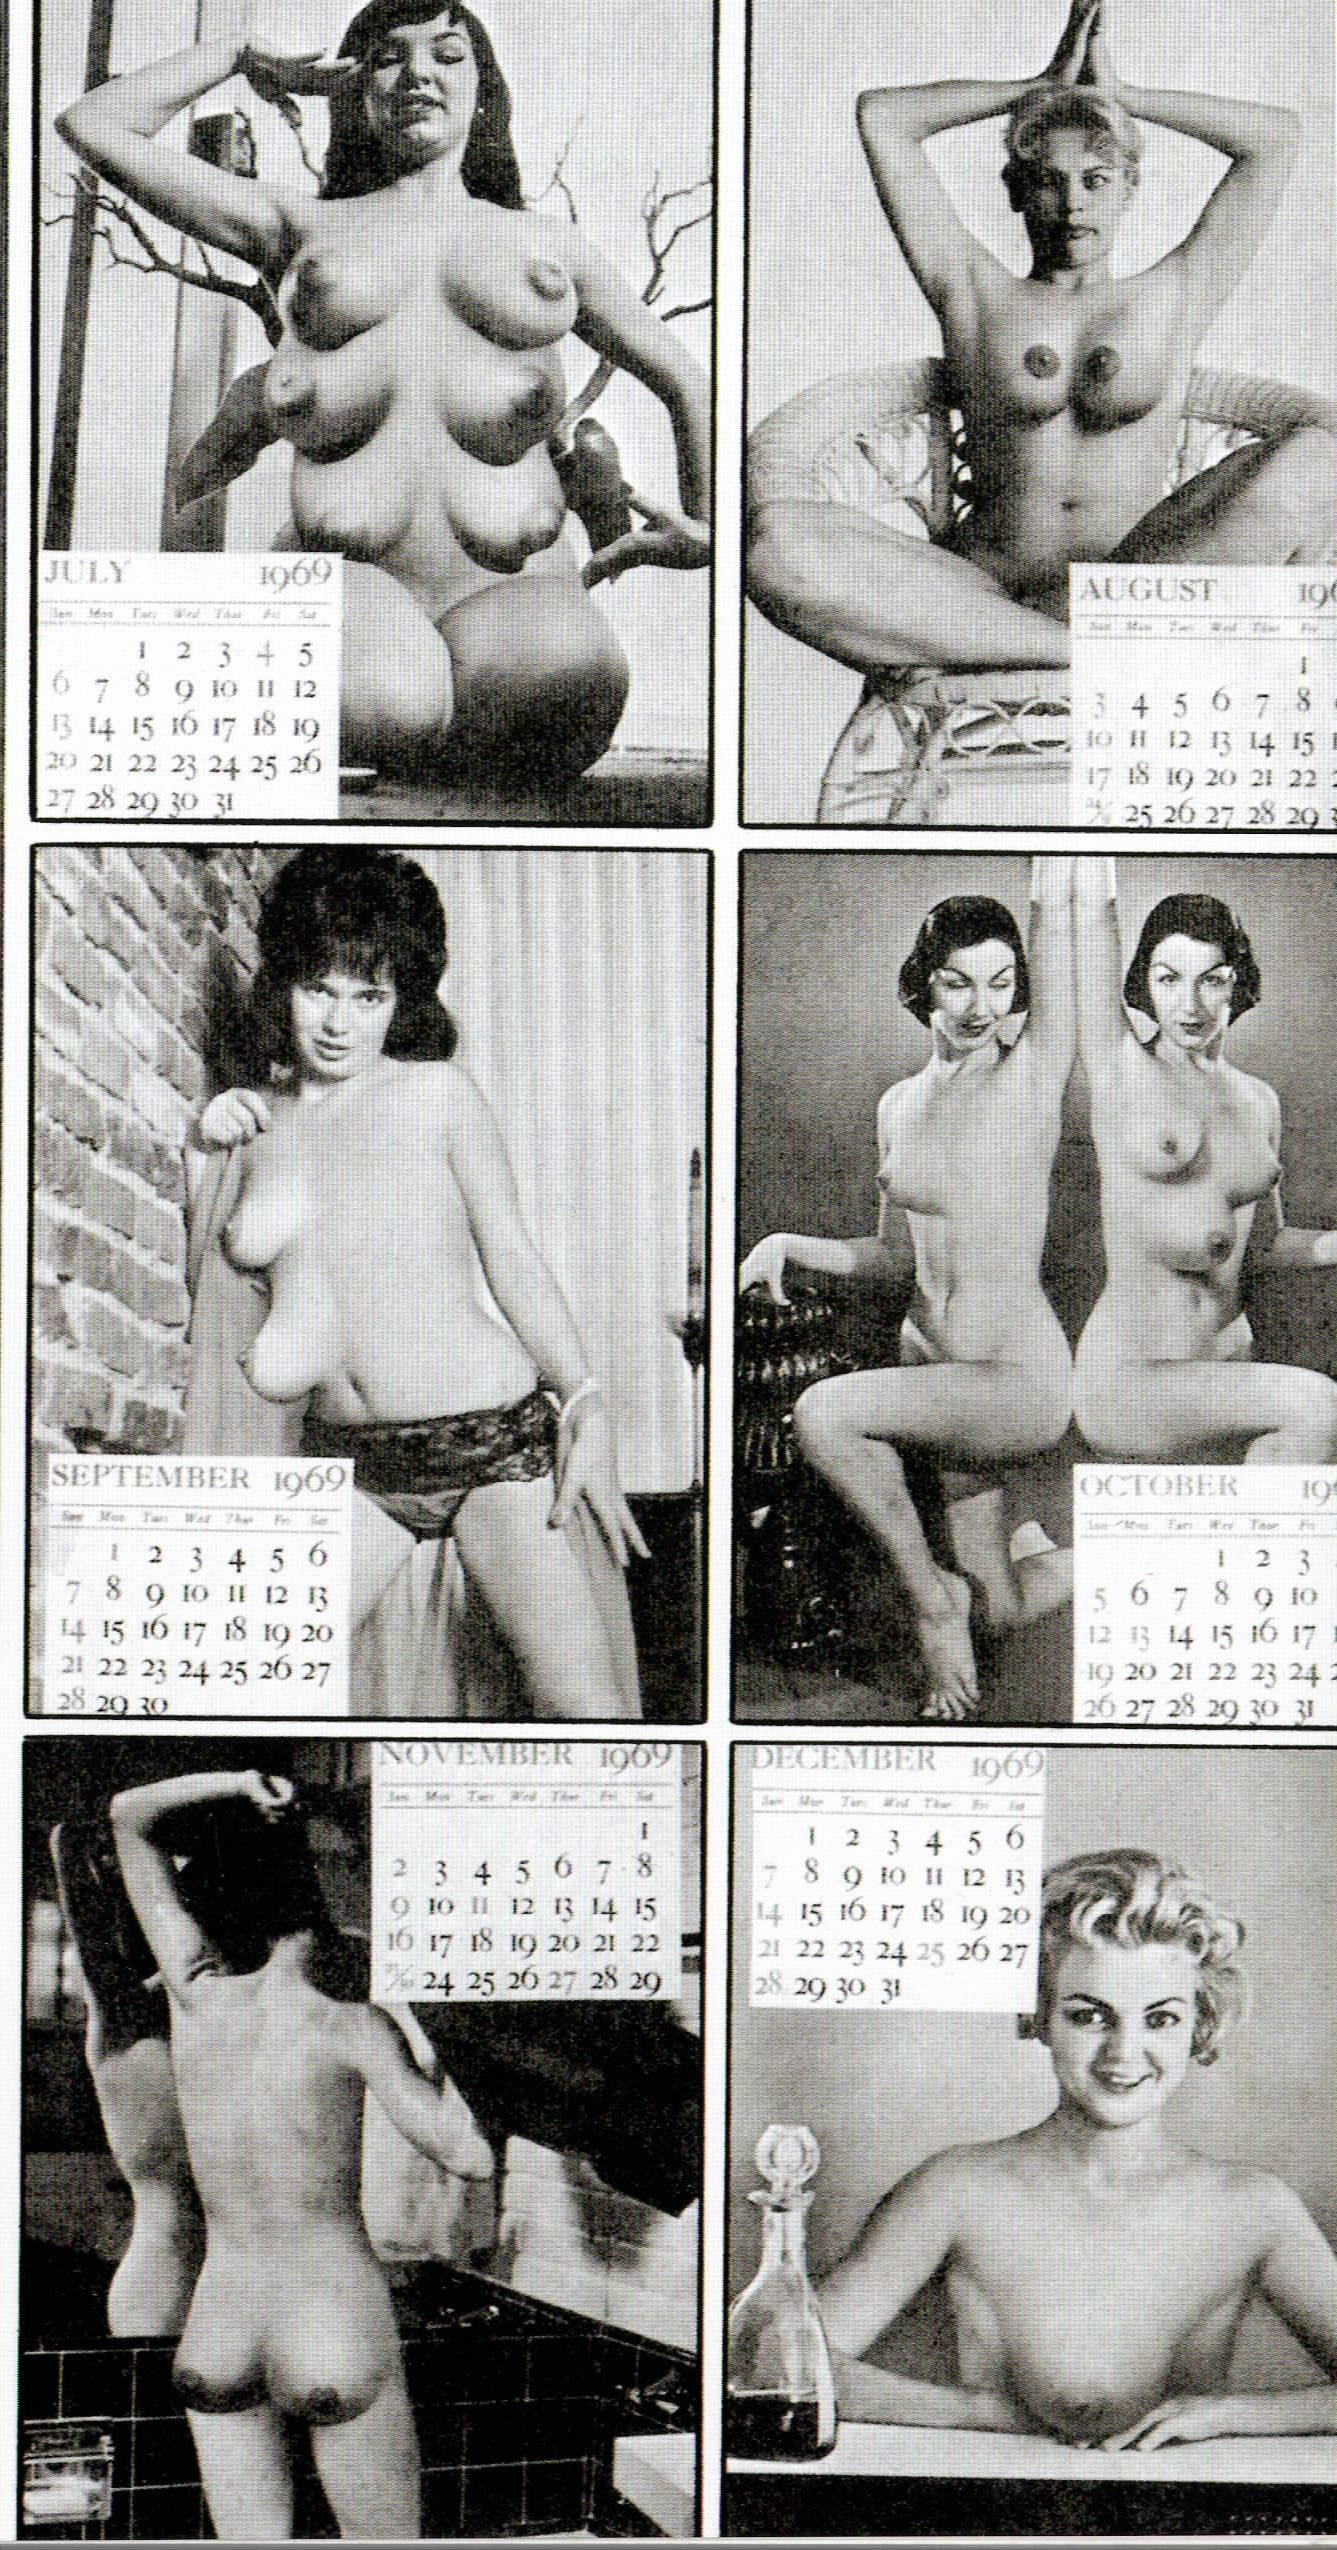 Treasurechest calendar